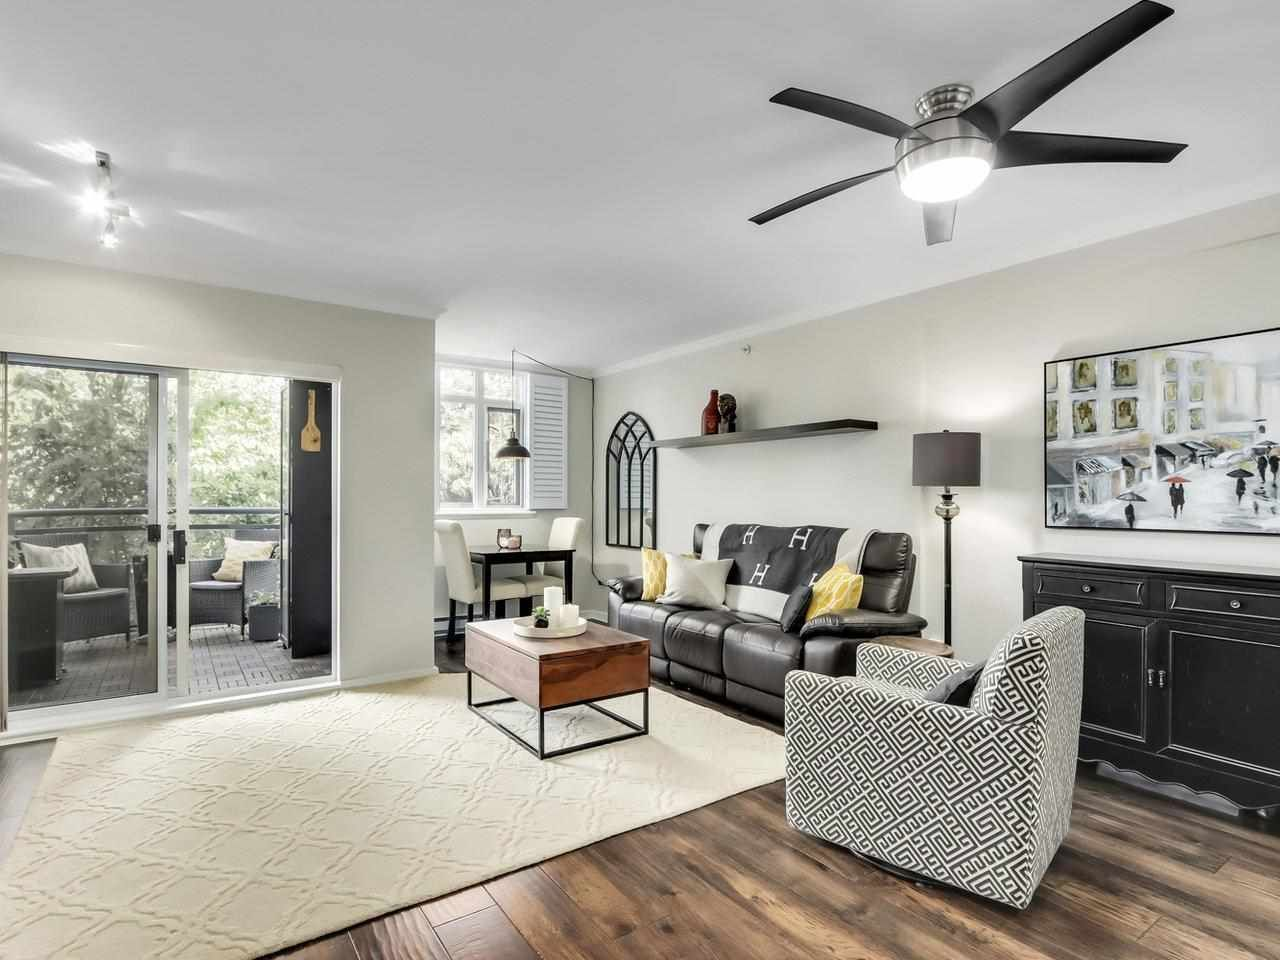 """Main Photo: 201 2665 W BROADWAY in Vancouver: Kitsilano Condo for sale in """"MAGUIRE BUILDING"""" (Vancouver West)  : MLS®# R2580256"""